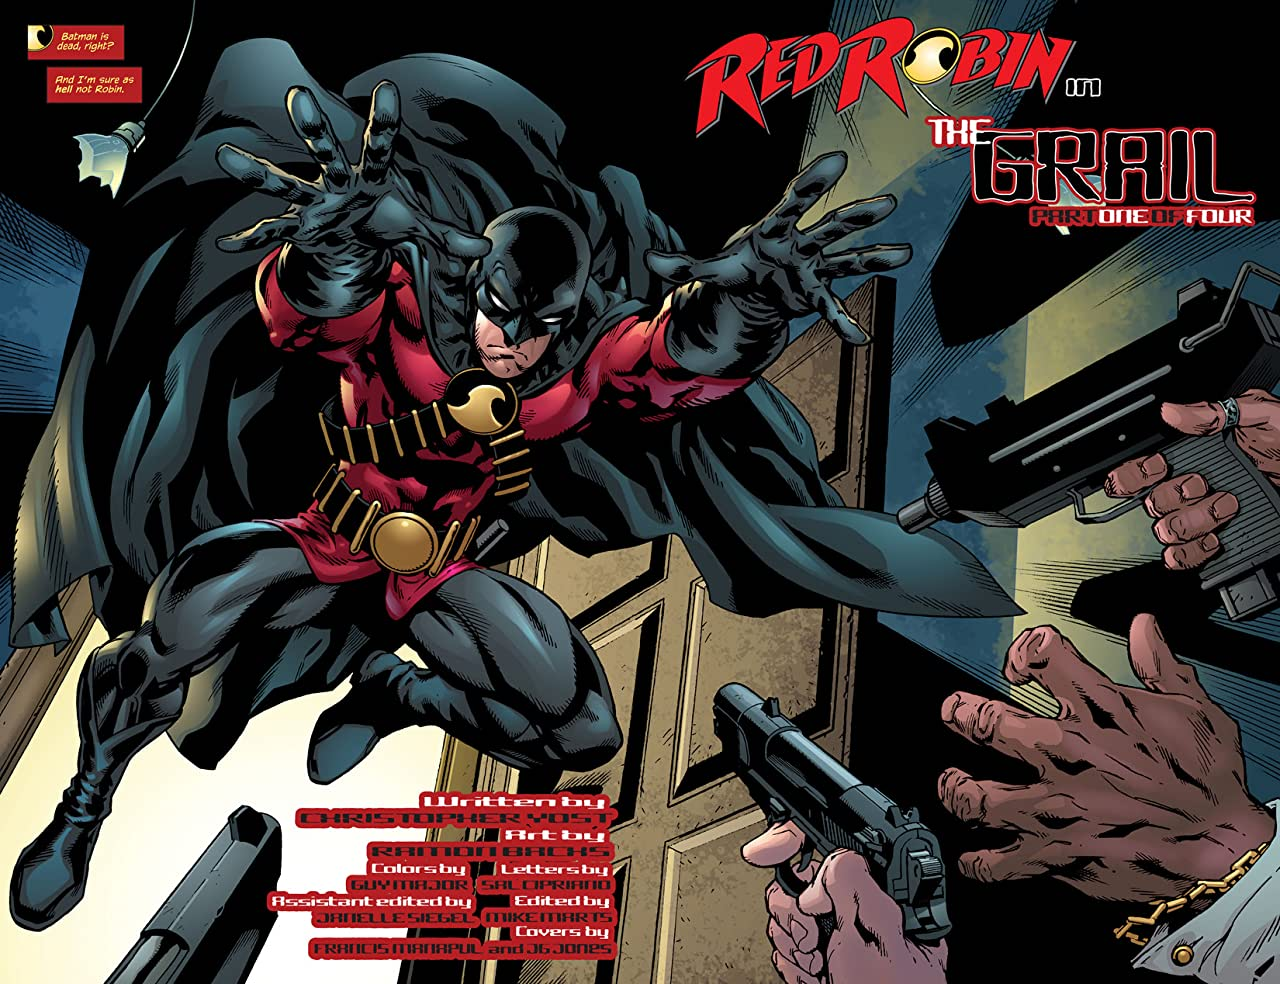 Red Robin #1